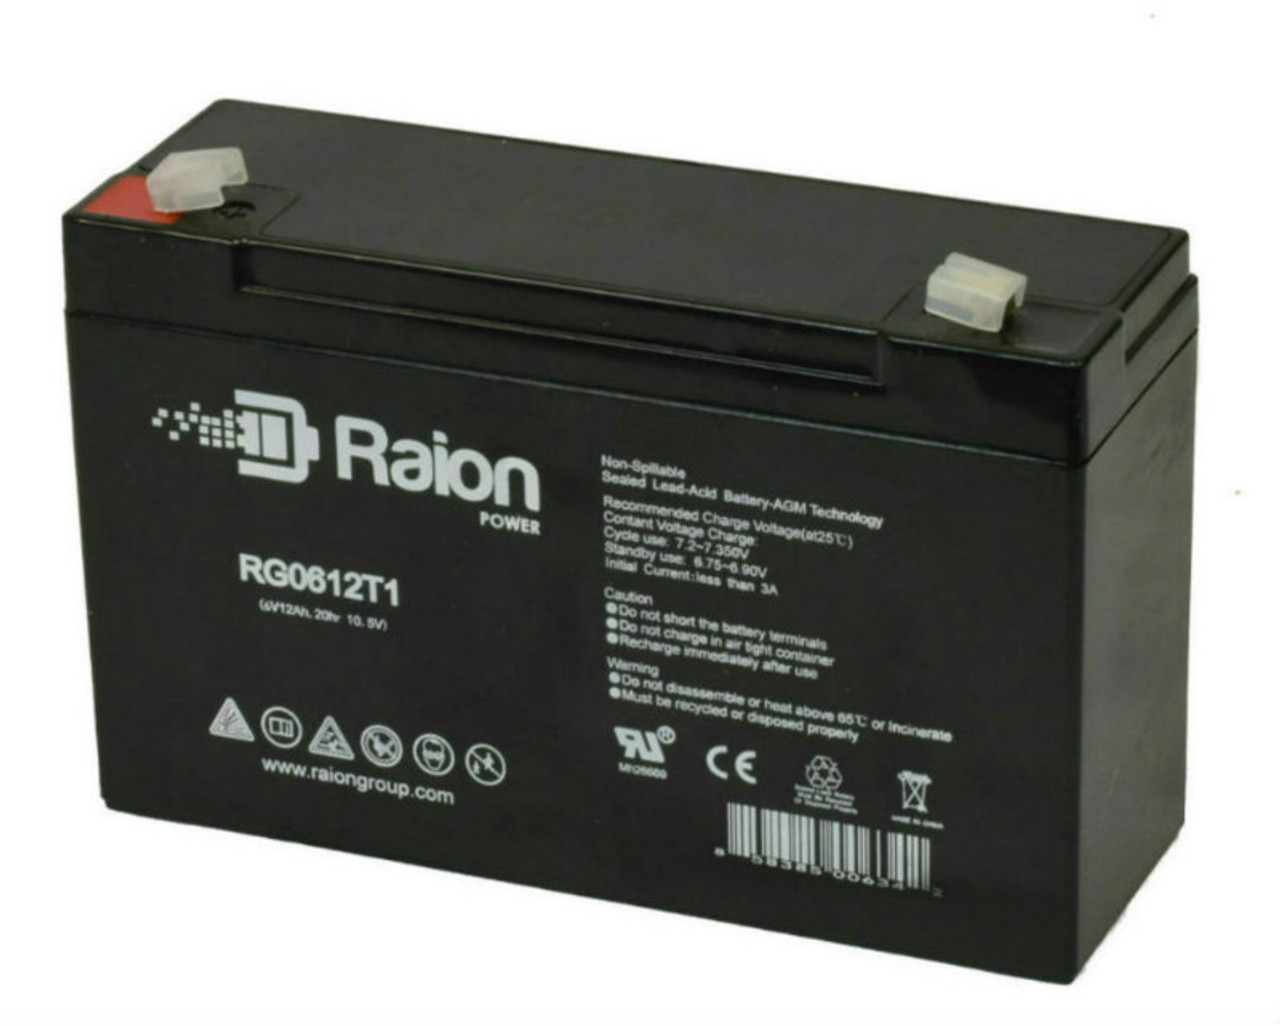 Raion Power RG06120T1 Replacement Battery Pack for Holophane M6 emergency light